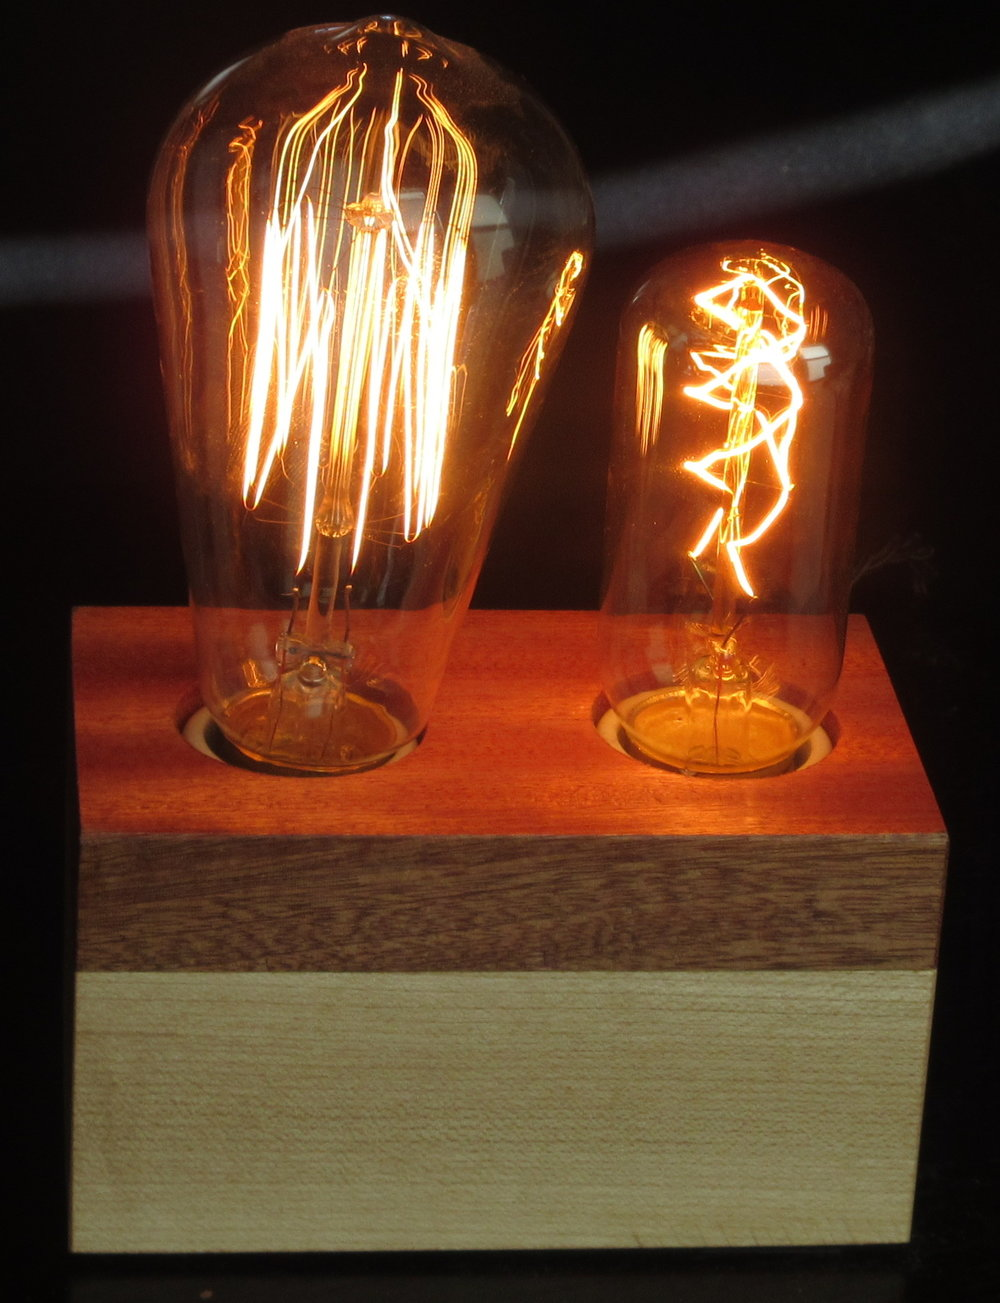 Sapele and Maple - 2 lamps